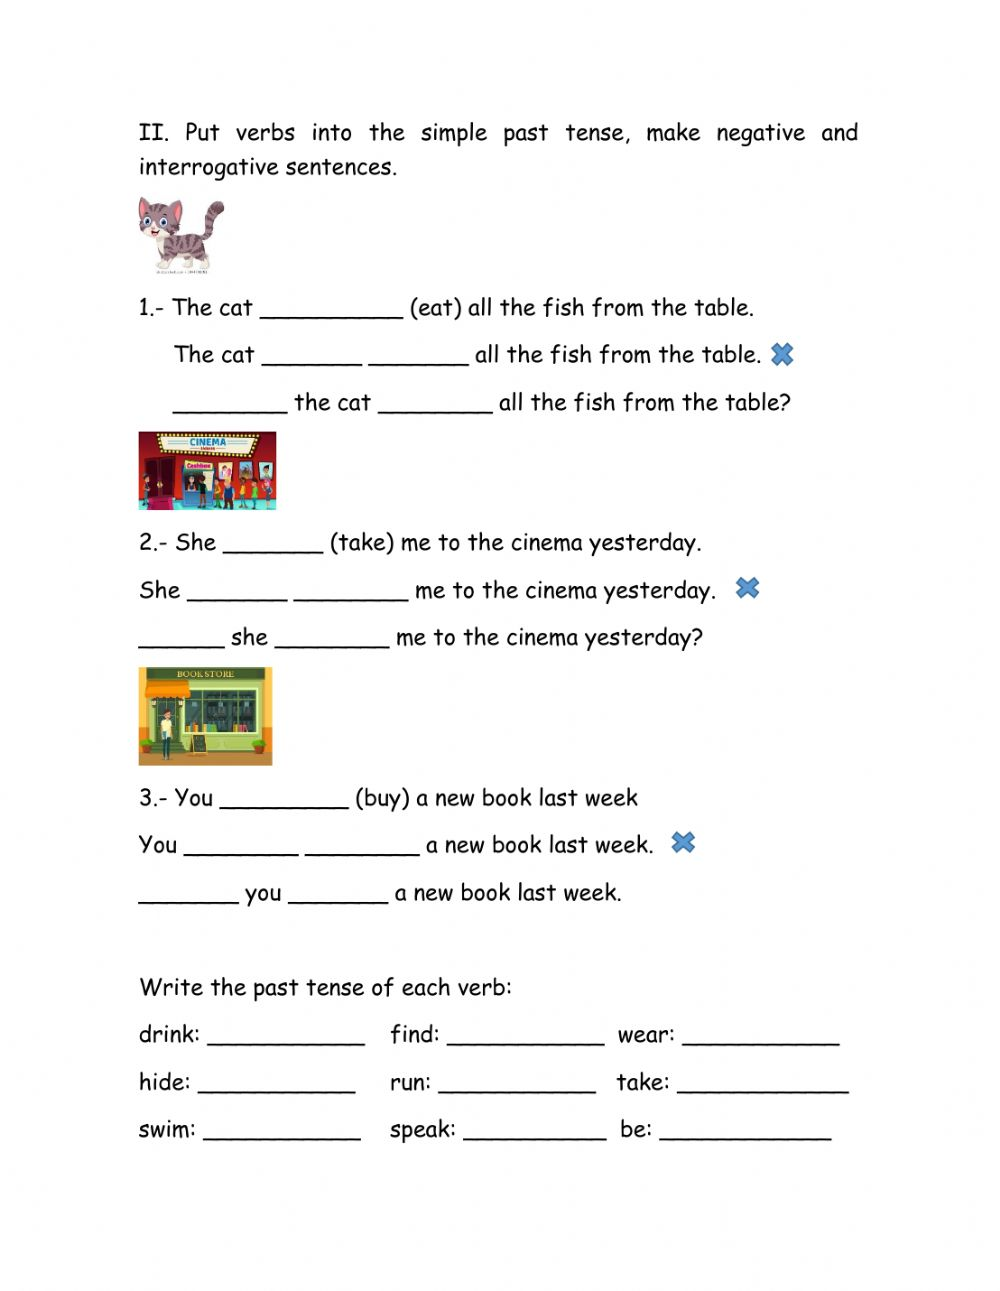 Verbs in past tense exercise